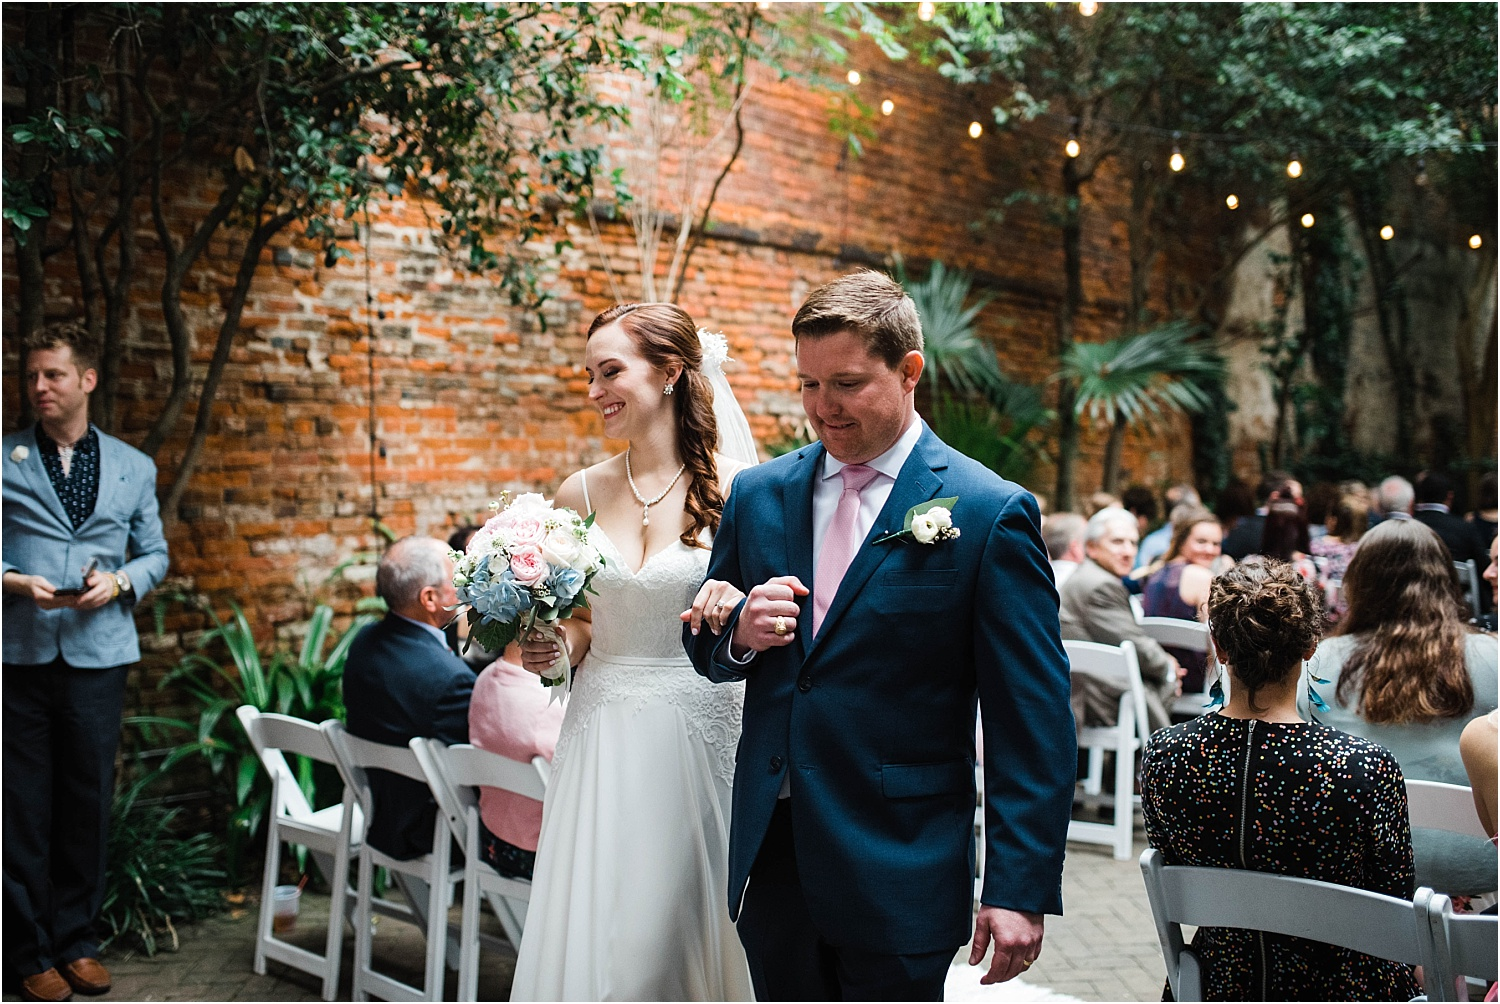 Amy + Chris-Pharmacy-Museum-Muriel's-New-Orleans-Wedding-Photos_Gabby Chapin_Prints_00315_BLOG.jpg